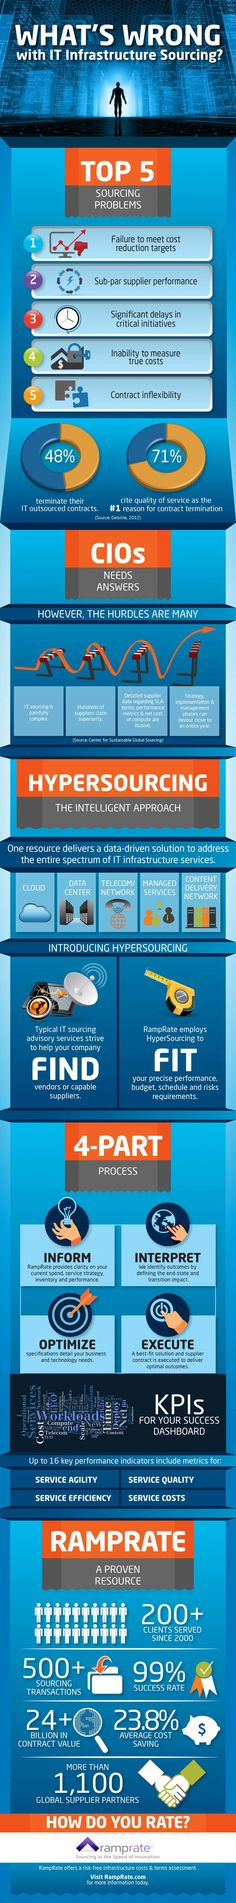 What's Wrong with IT Infrastructure Sourcing [Infographic]? Data Quality, Cool Technology, Whats Wrong, Big Data, Decision Making, Scientists, Infographic, How To Apply, Making Decisions